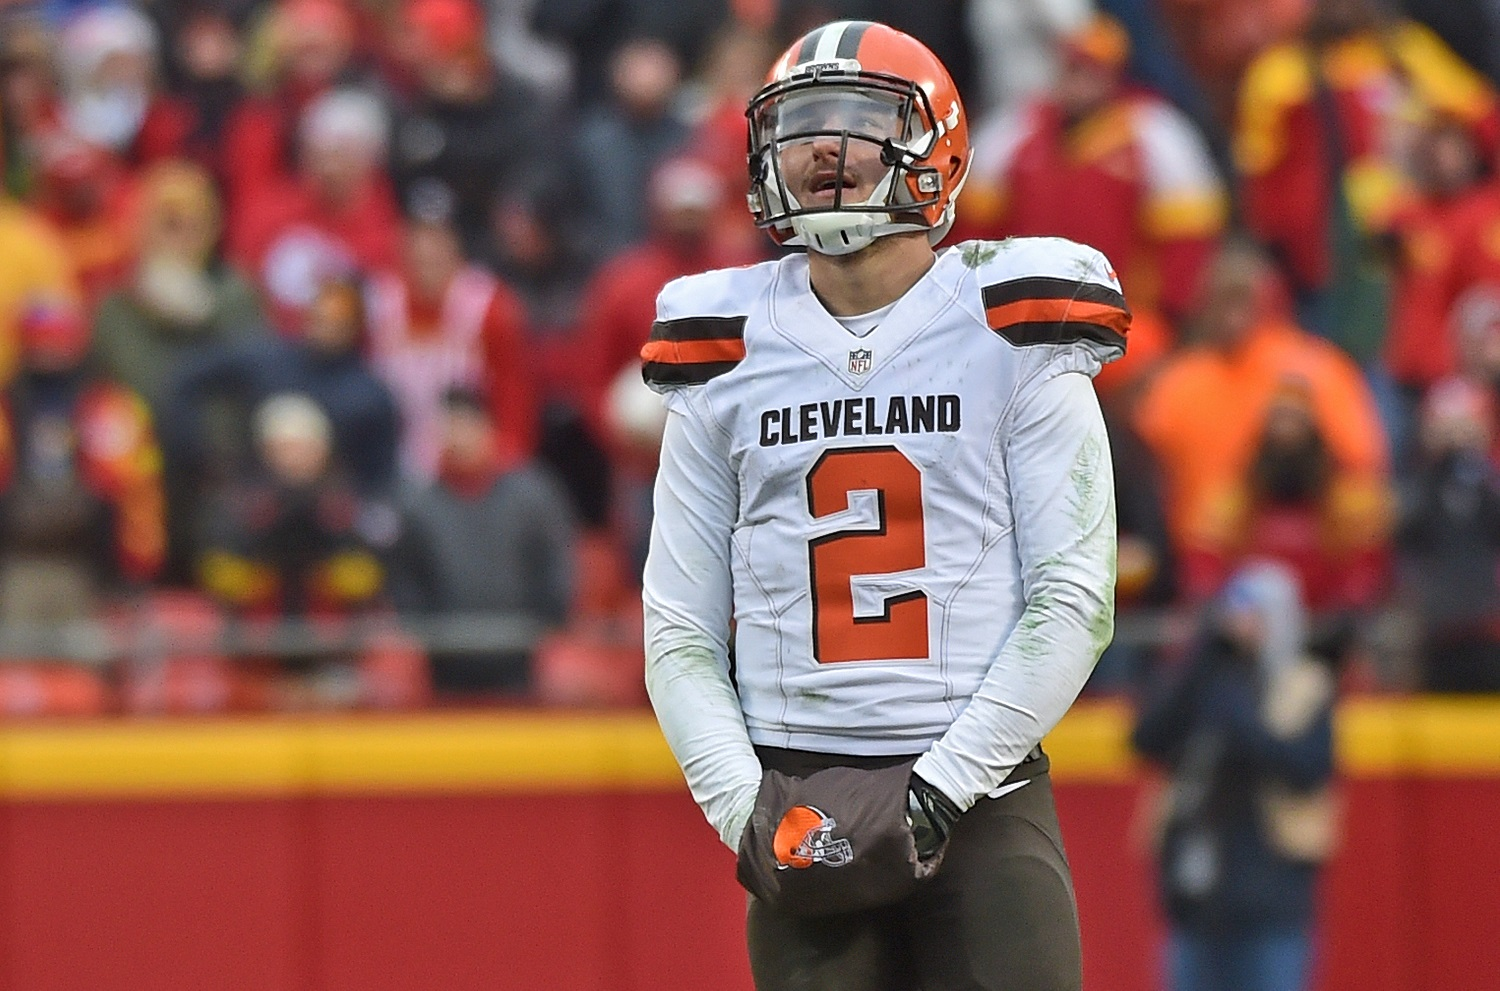 Johnny Manziel highlights the Cleveland Browns' astonishing list of first-round quarterback misses in the NFL draft.